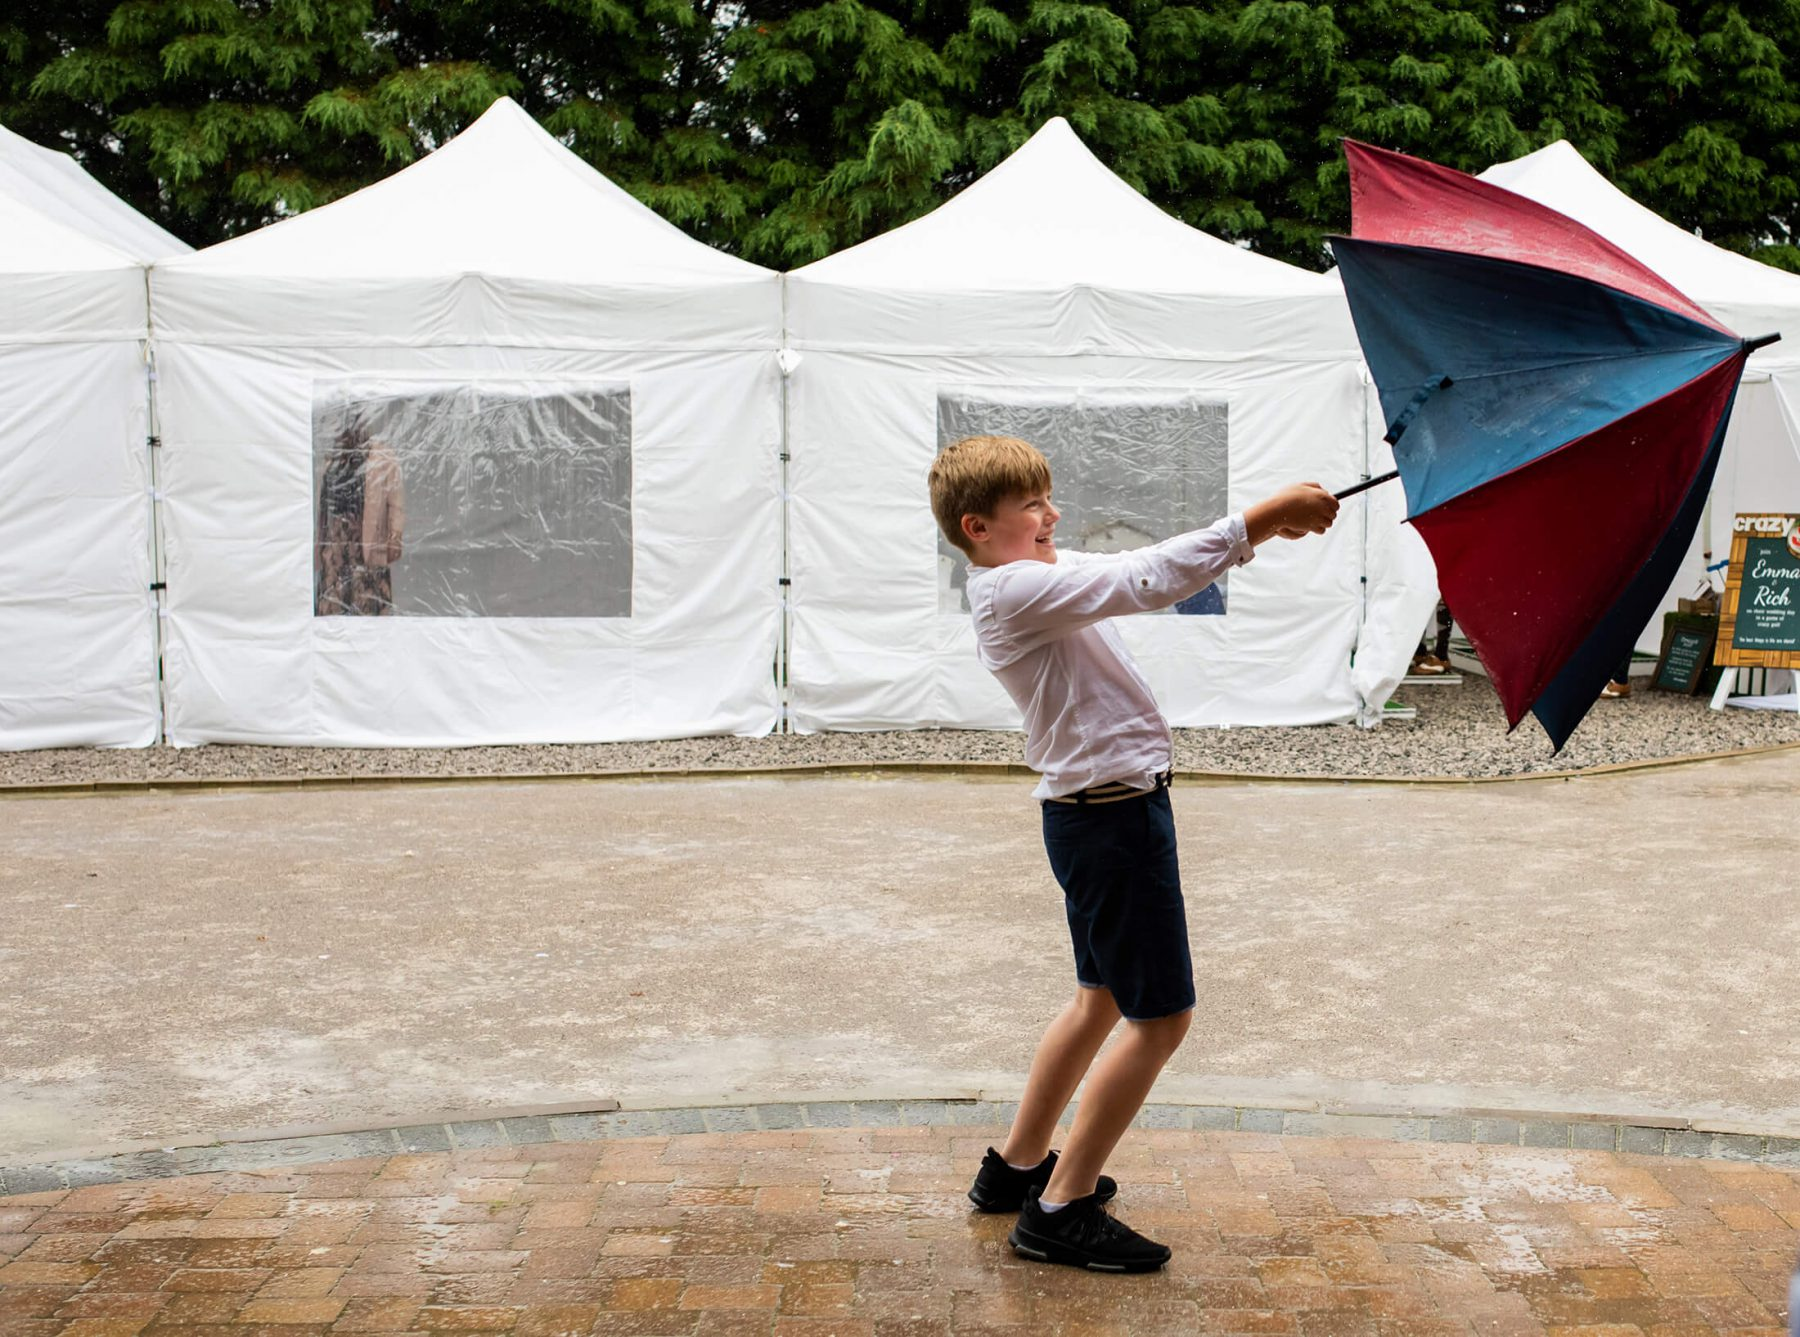 A young buy holds an umbrella